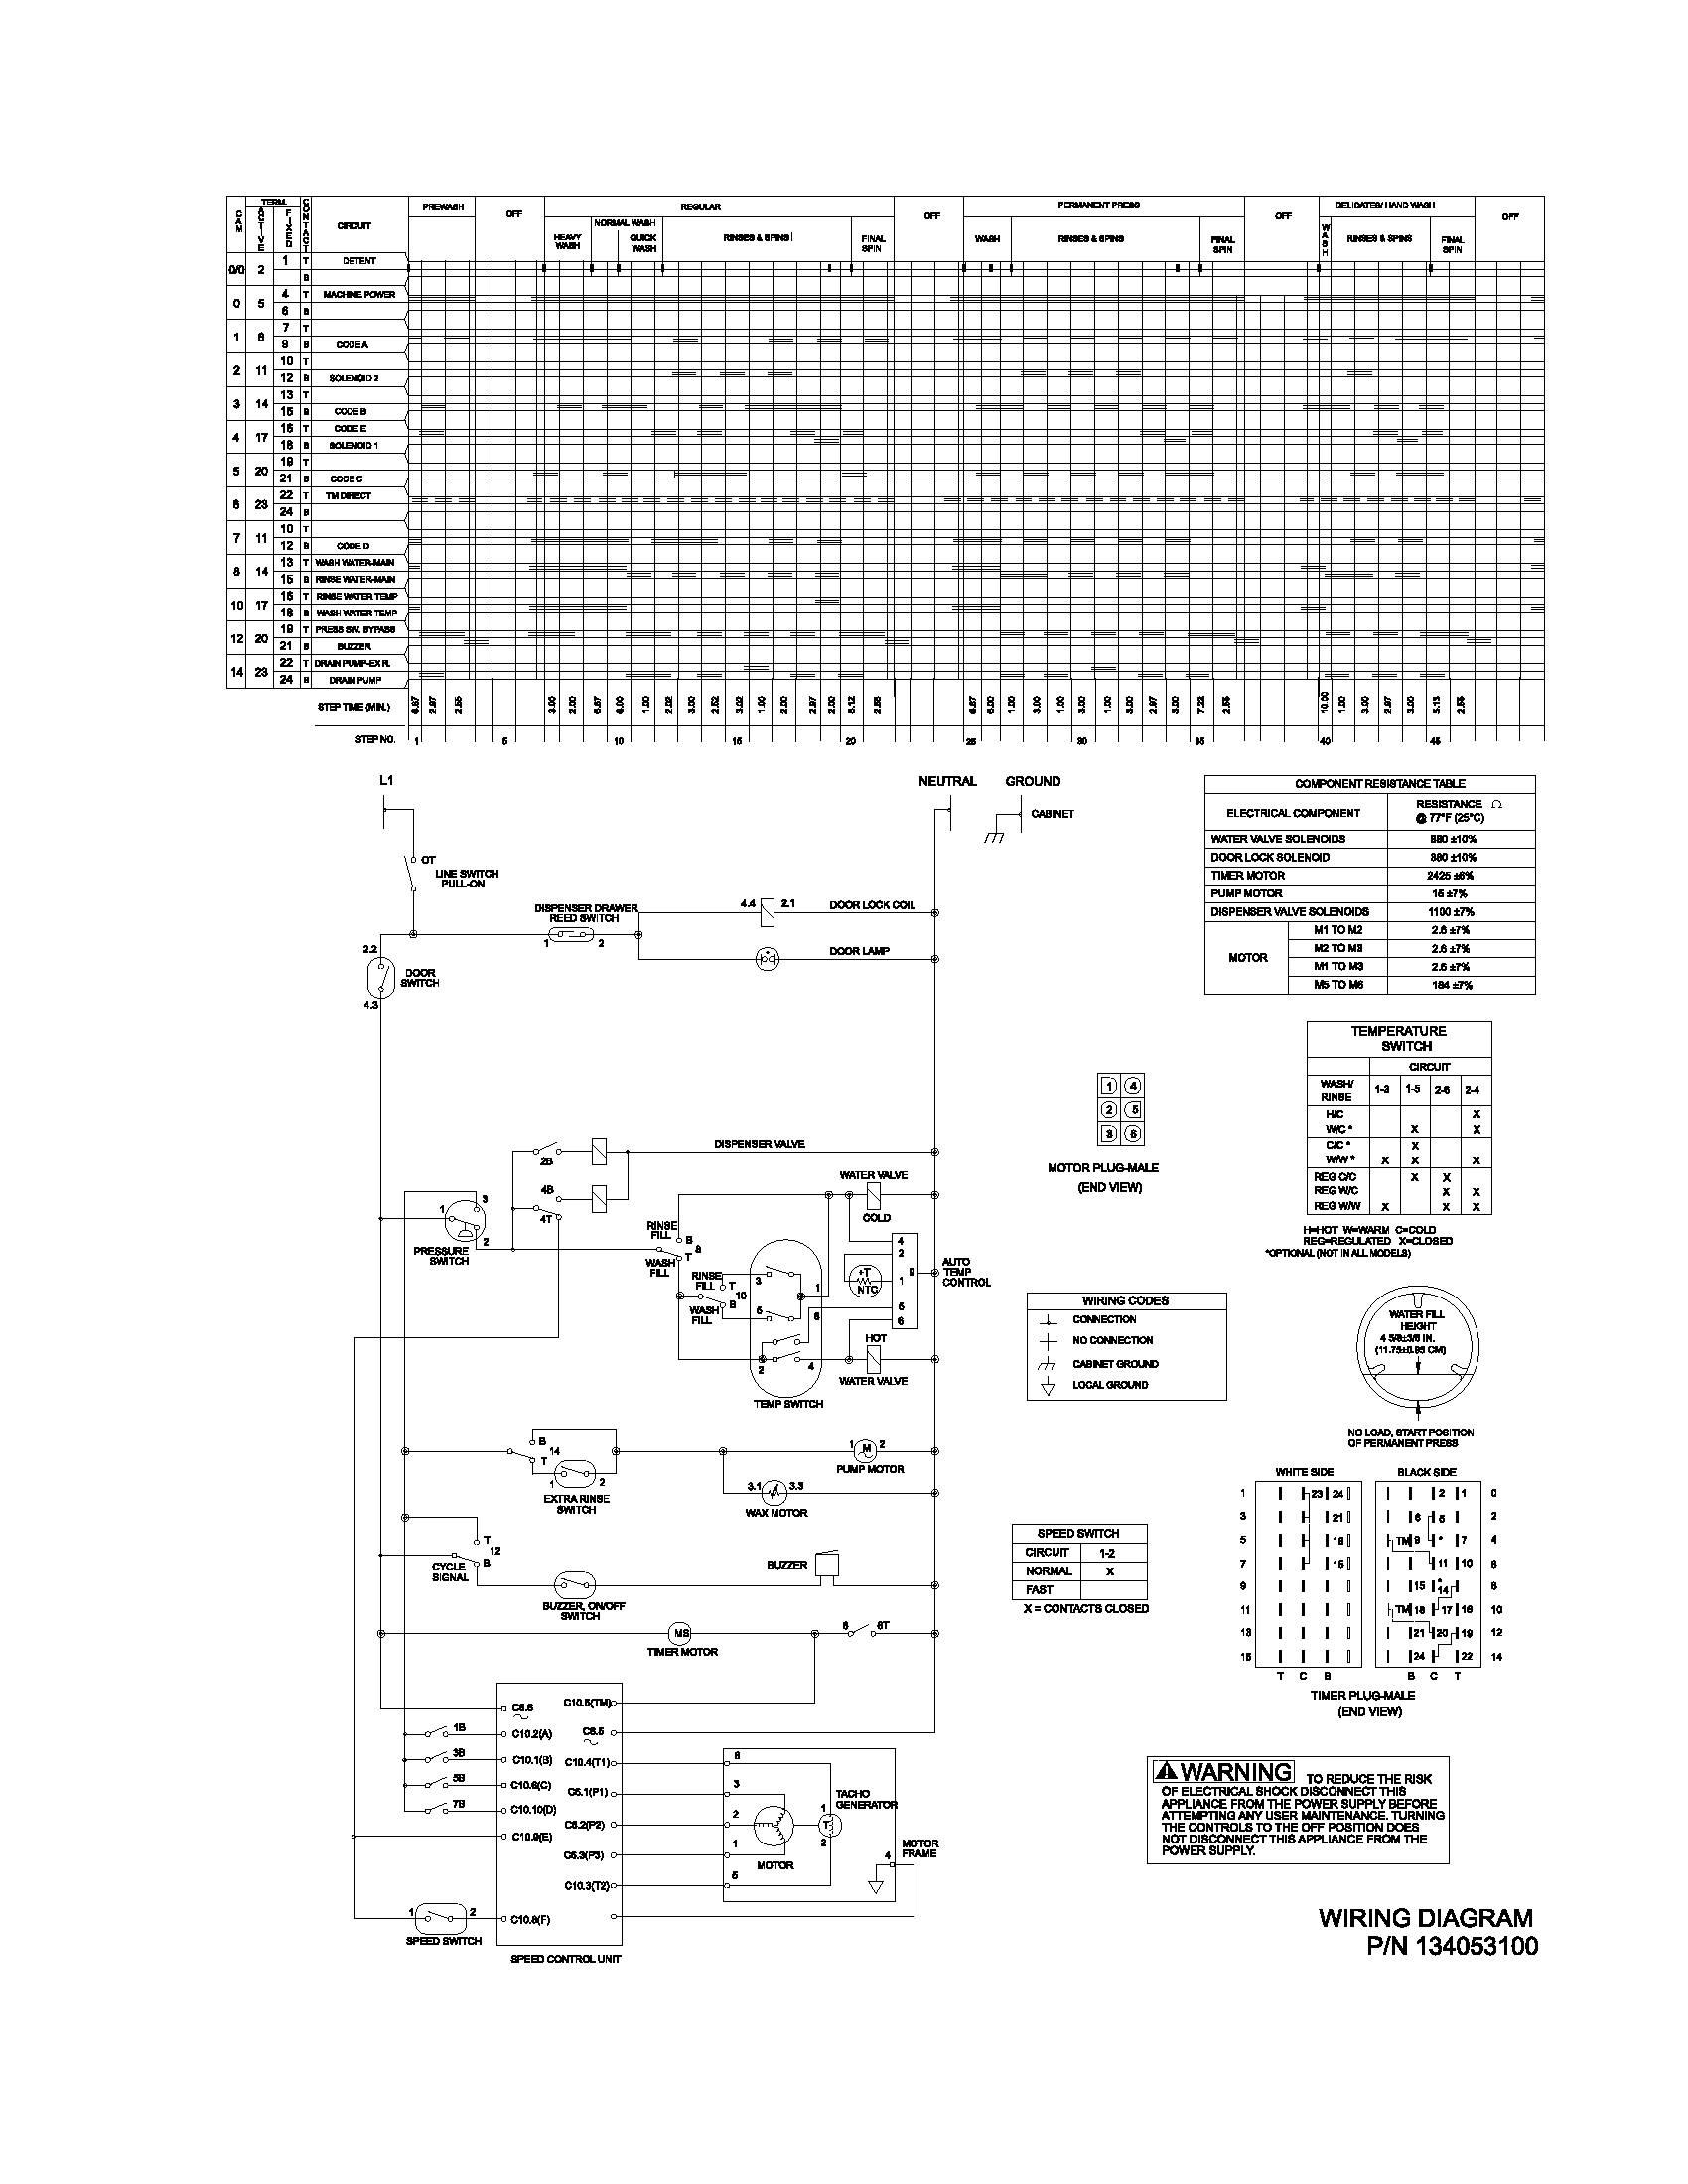 Looking for Gibson model GTF1040AS0 washer repair